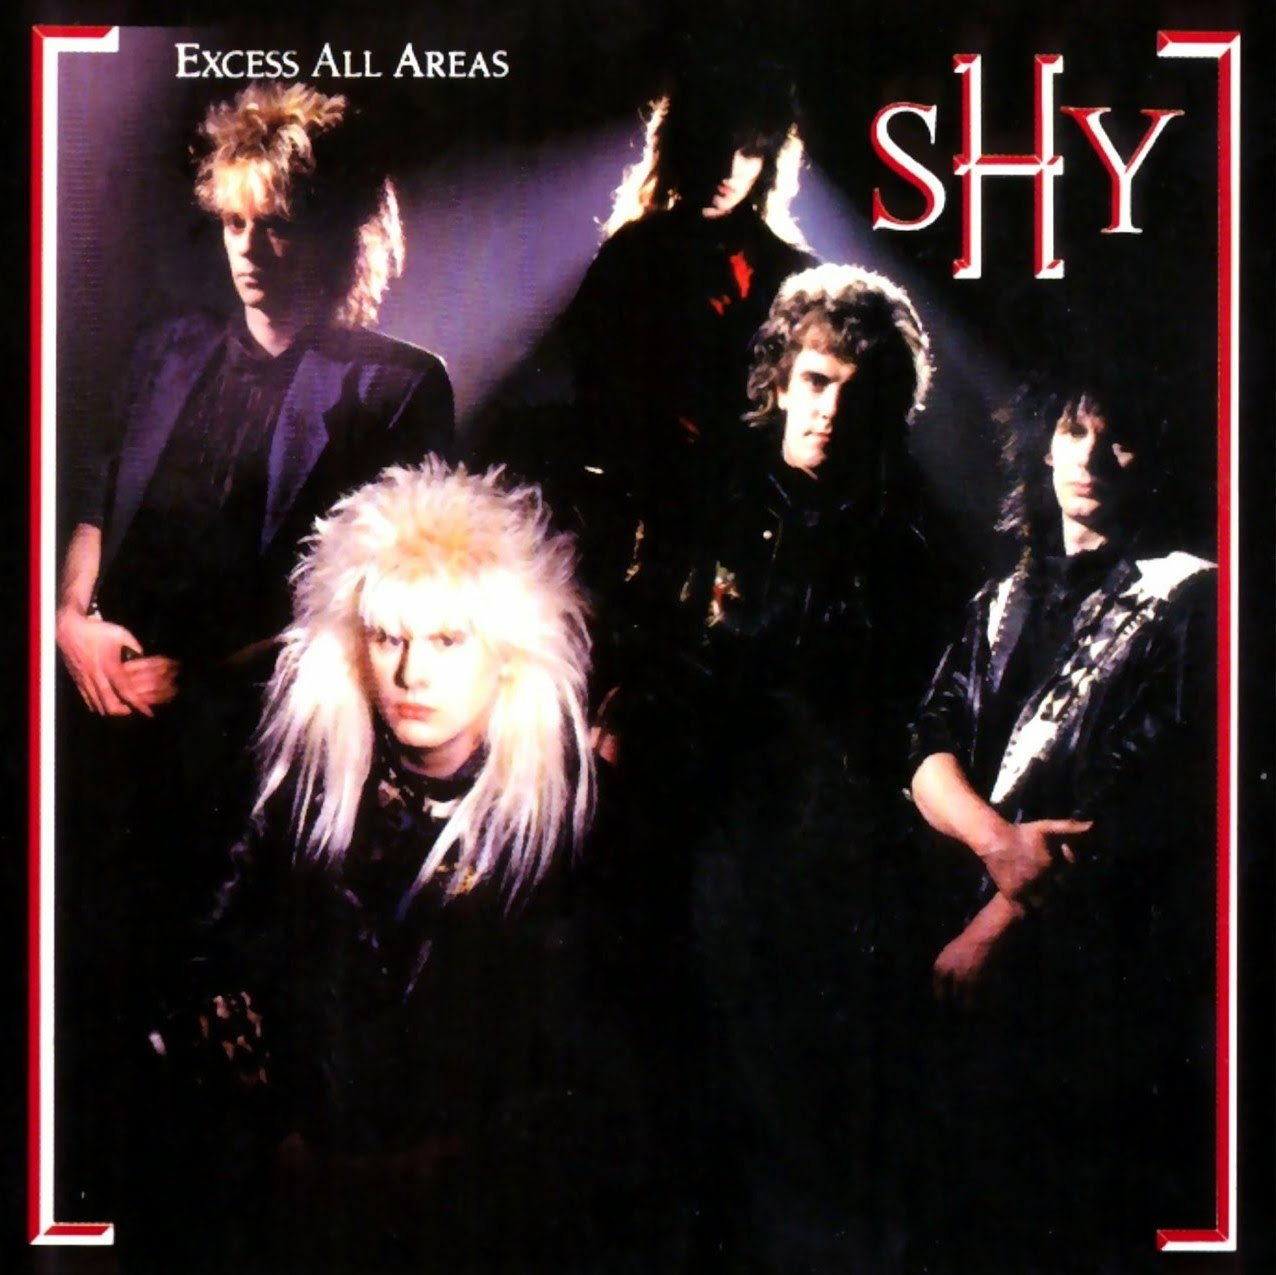 Shy Excess all areas 1987 aor melodic rock music blogspot albums bands